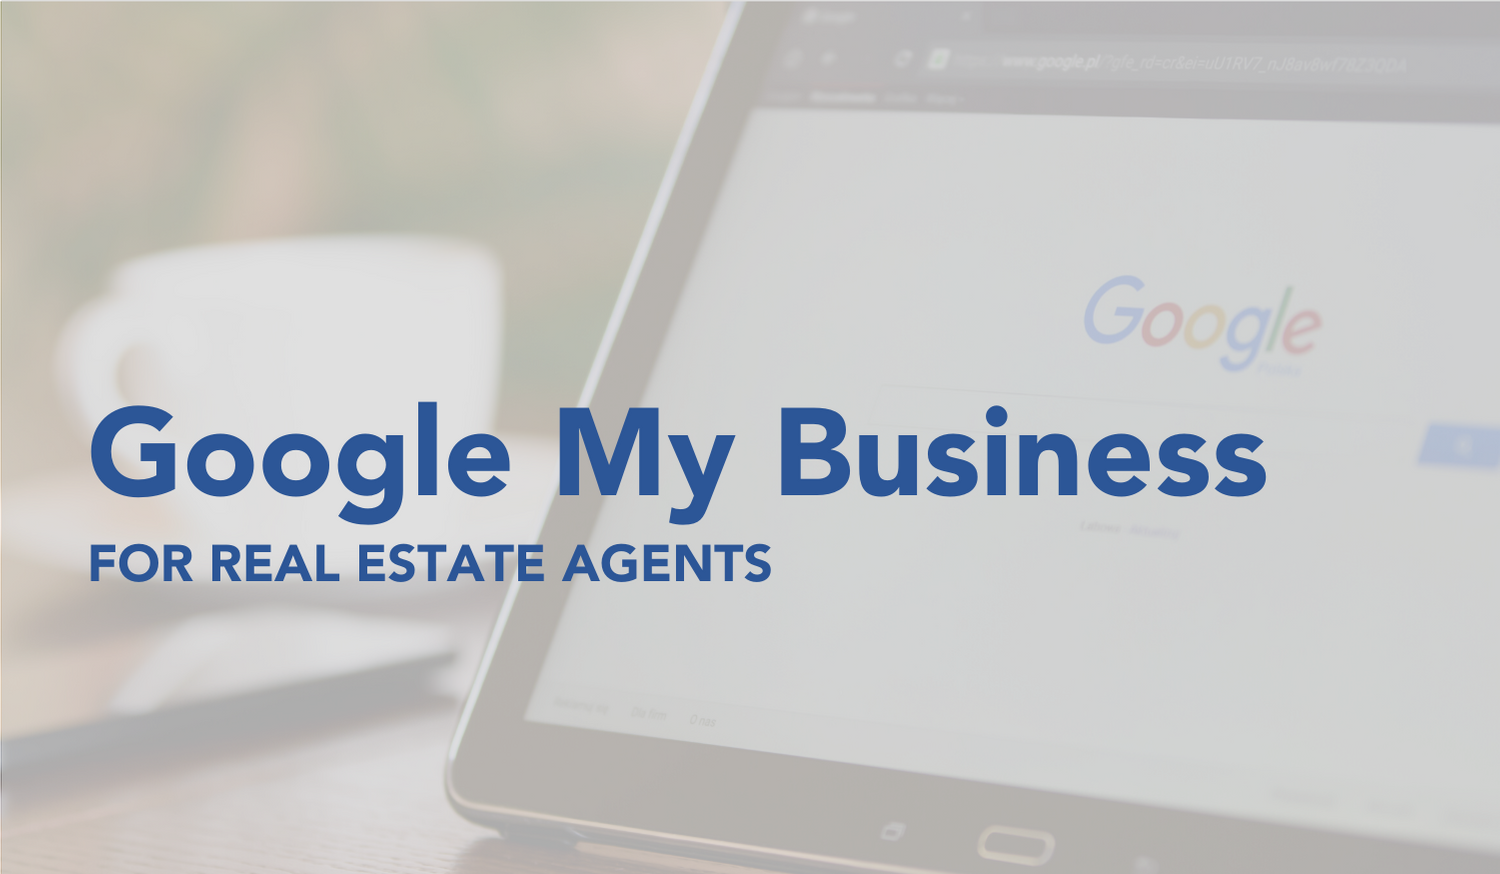 Google My Business Tutorial for Real Estate Agents